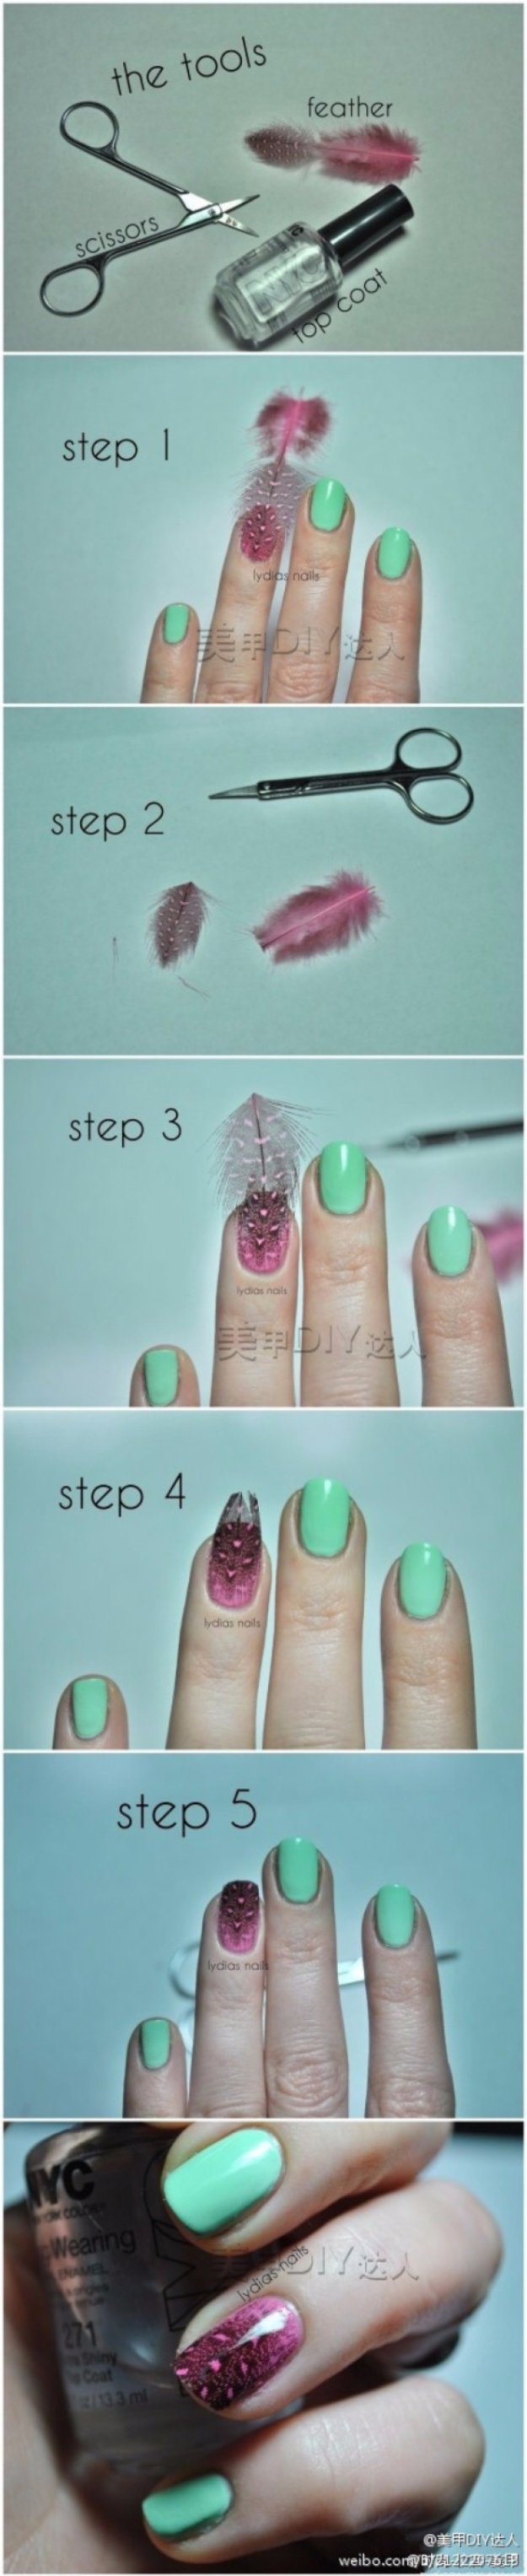 33 Unbelievably Cool Nail Art Ideas 30